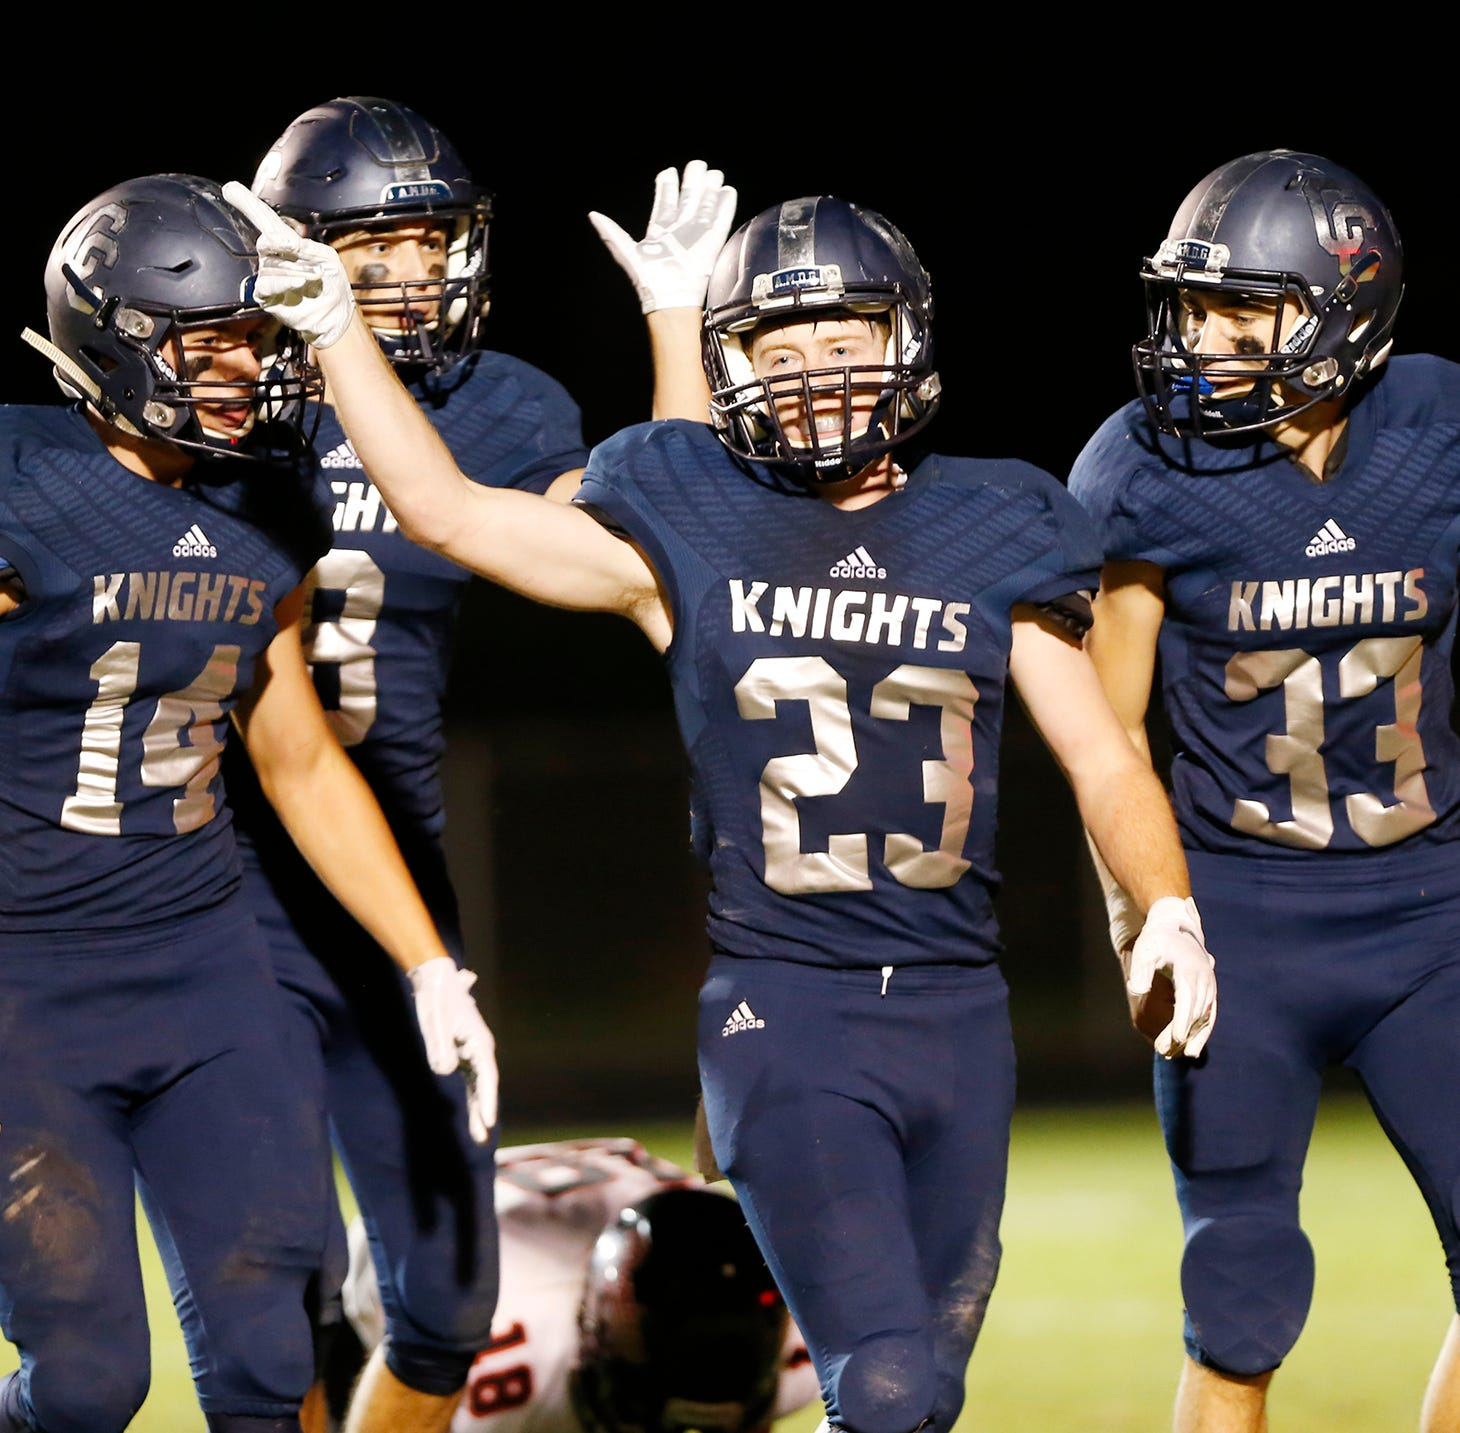 Central Catholic knocks off Rensselaer, 26-21